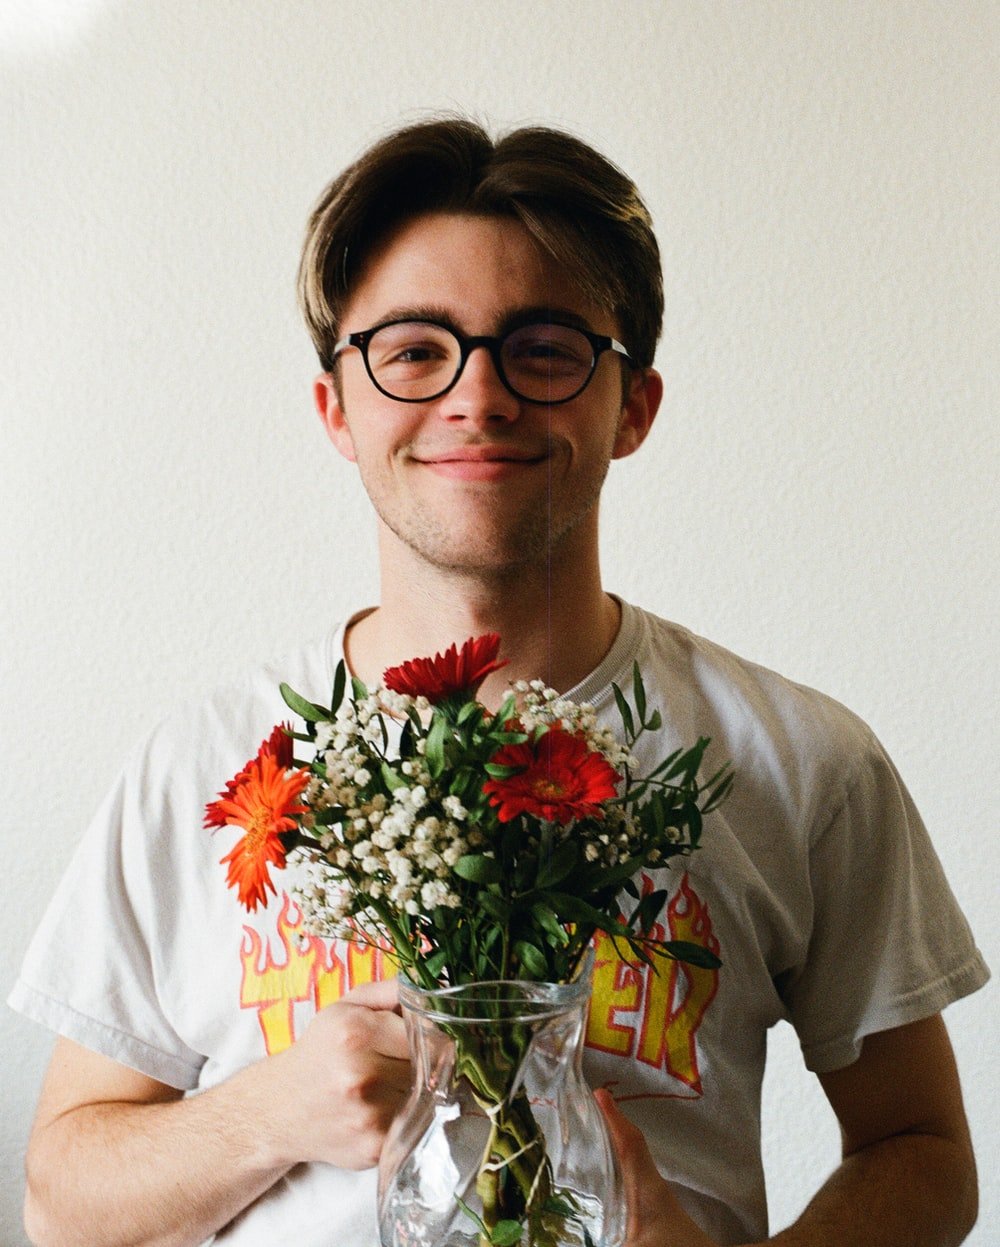 man in white crew neck t-shirt holding bouquet of red flowers